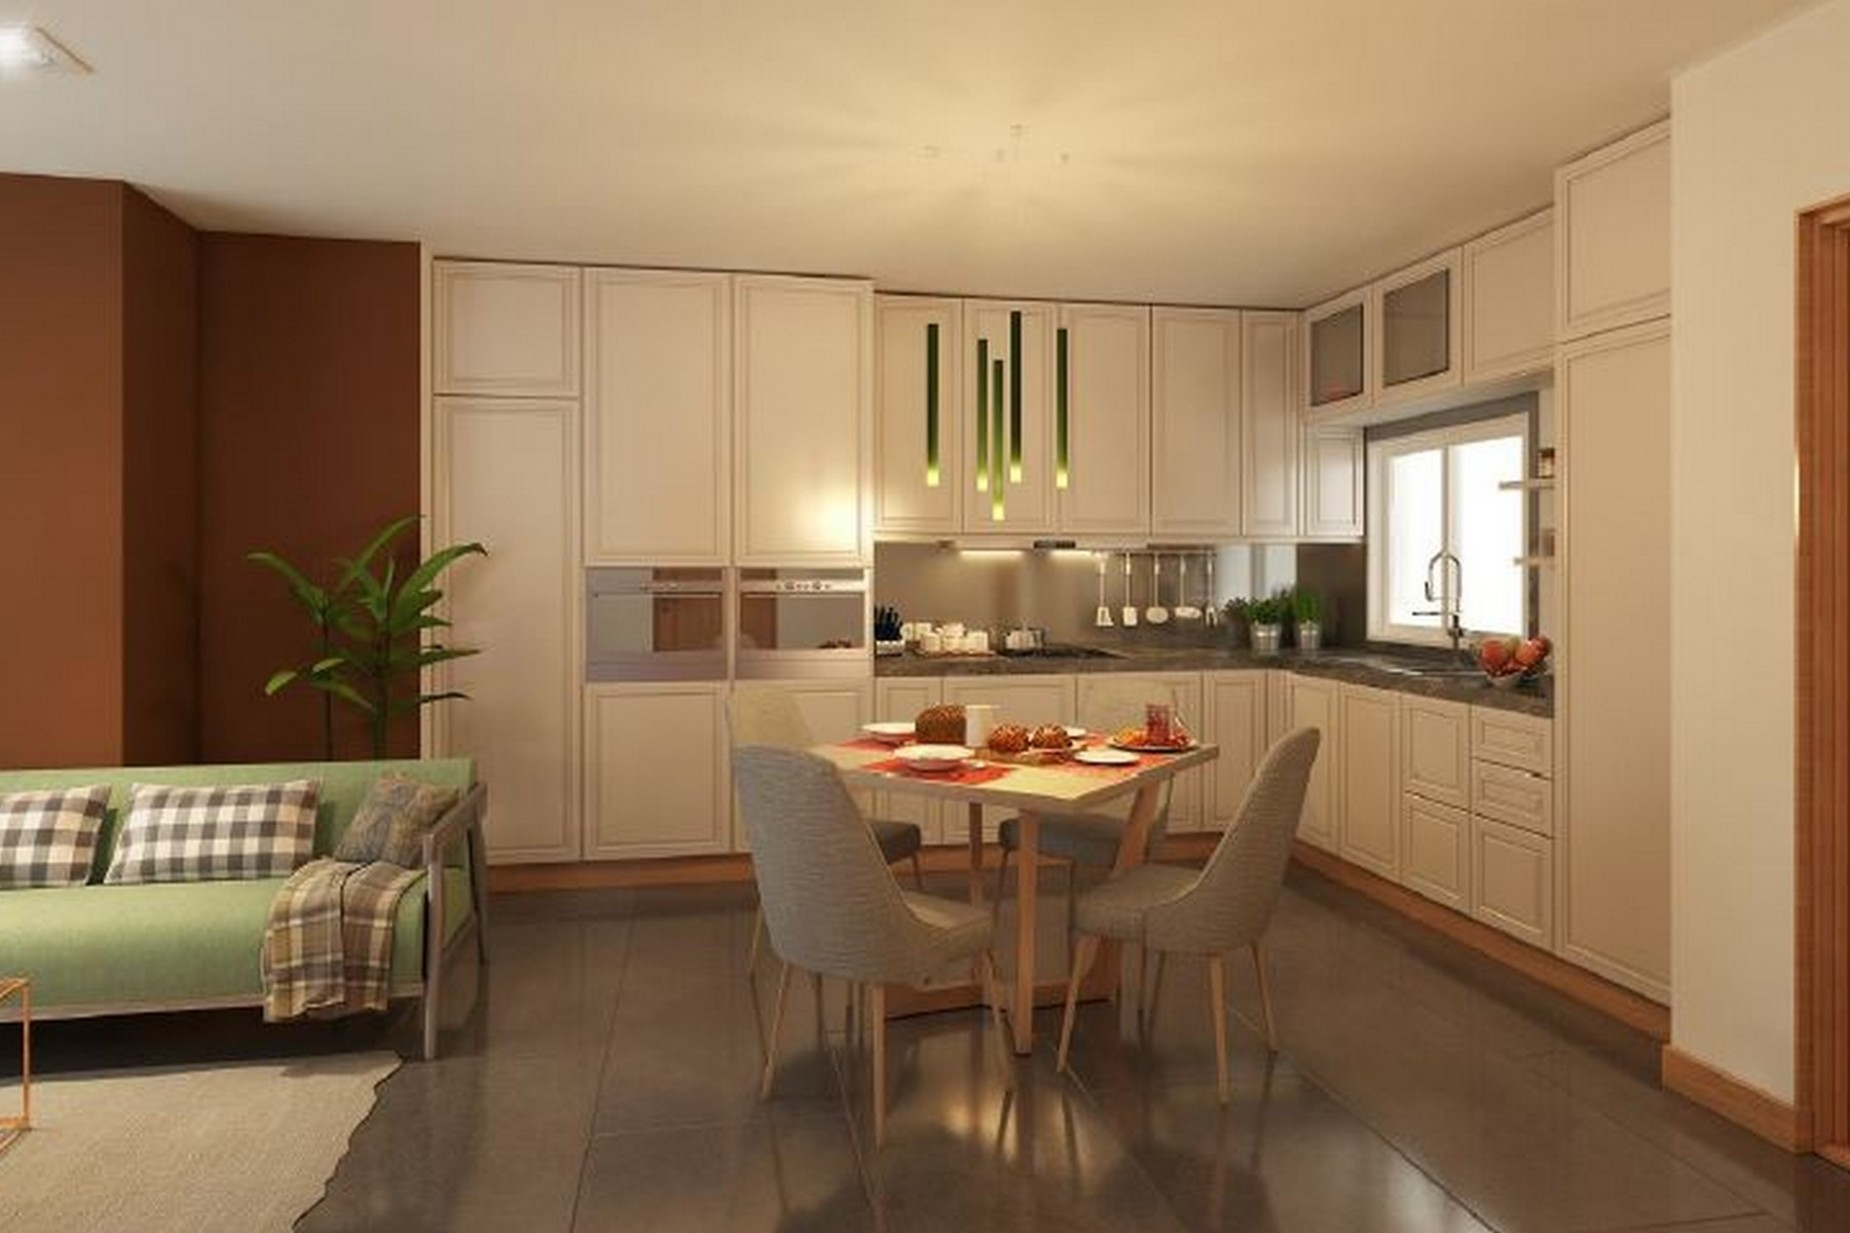 2 bed Apartment For Sale in Attard, Attard - thumb 2